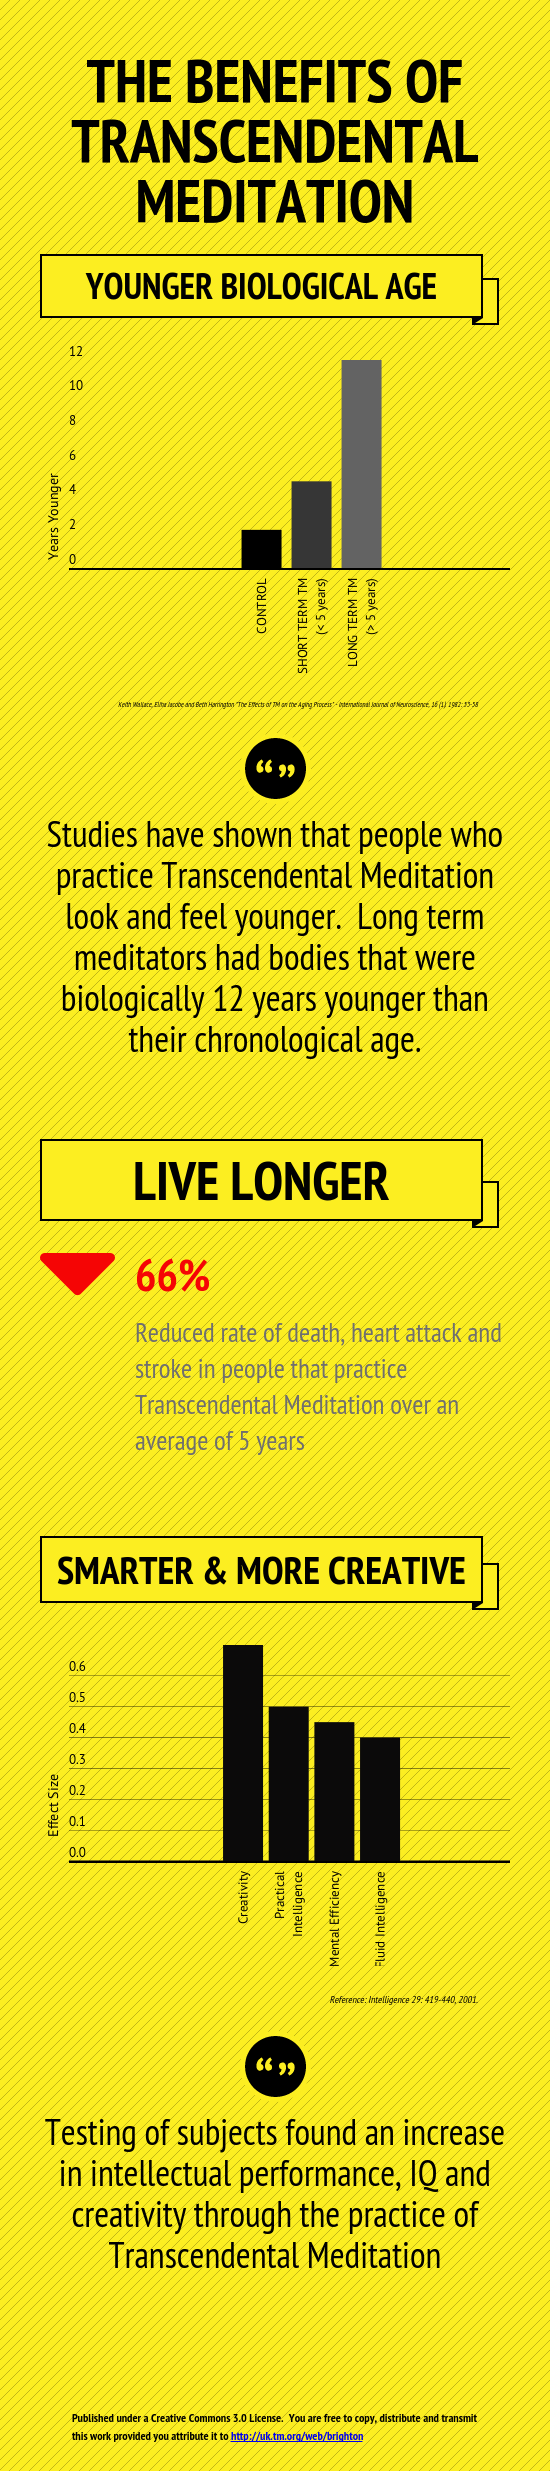 Infographic-Transcendental-Meditation-Brighton-Younger-Longer-Life-Smarter